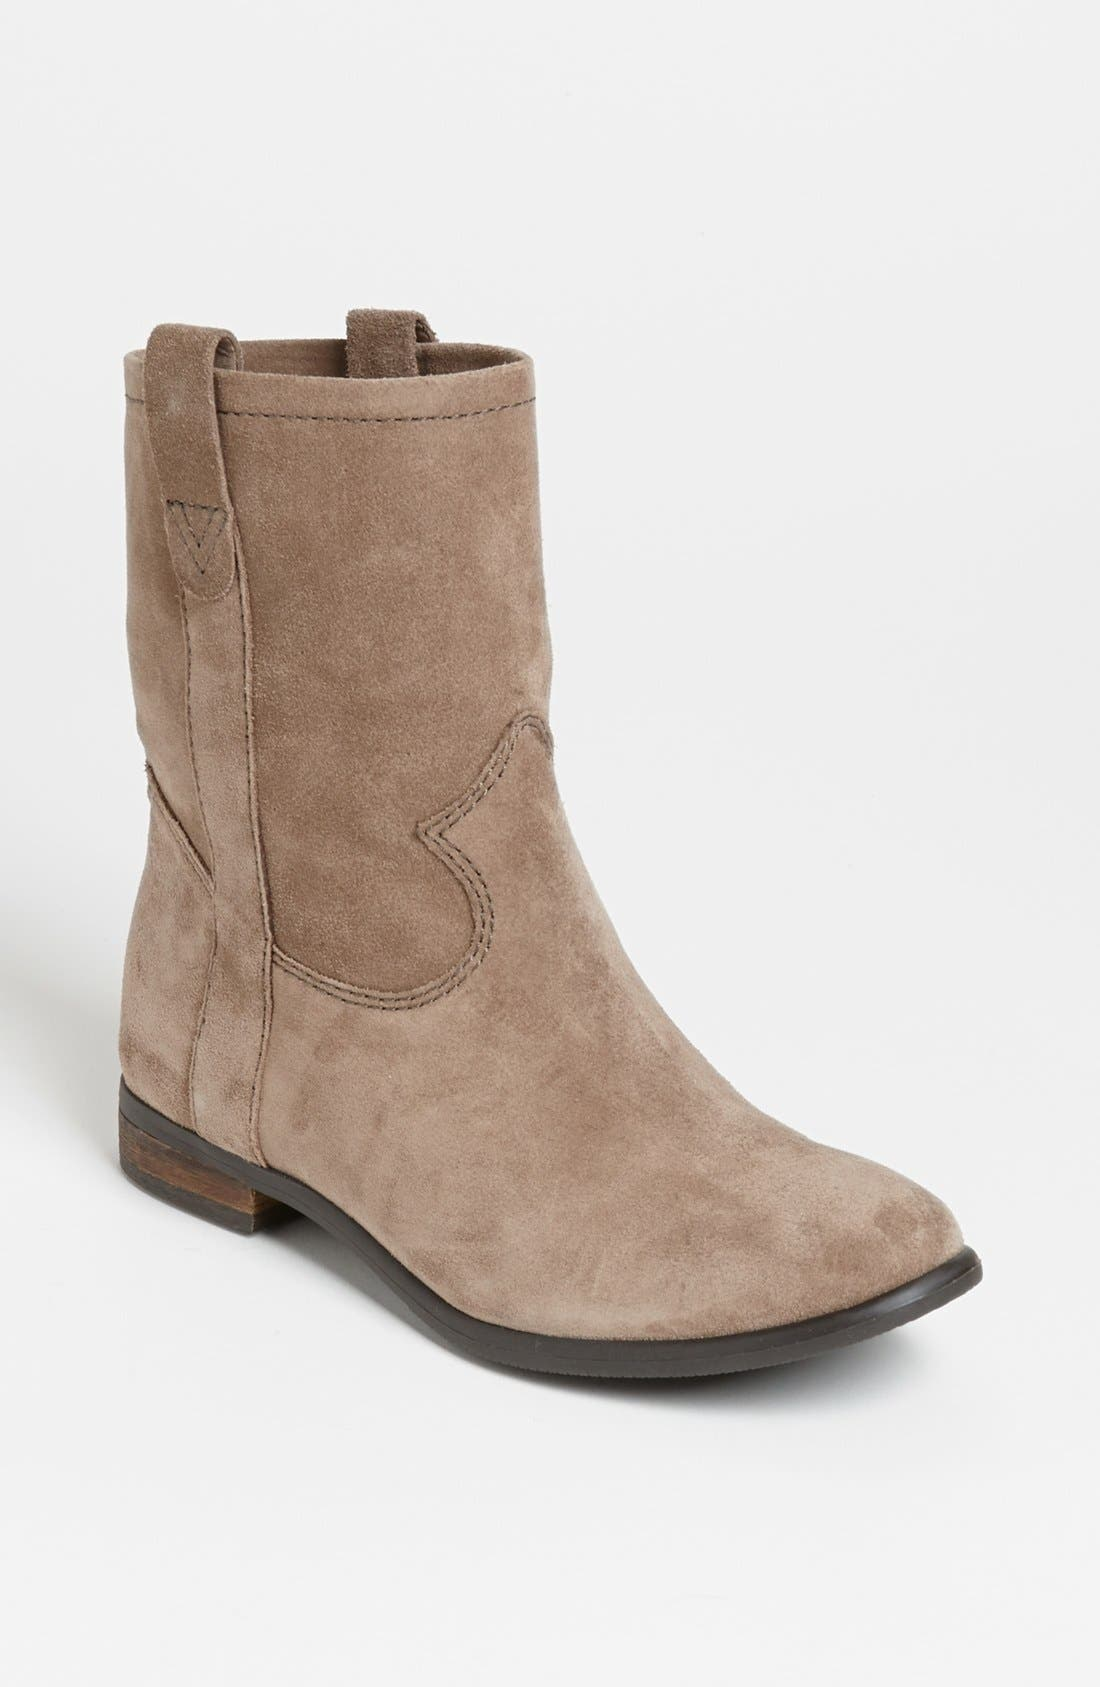 Alternate Image 1 Selected - Vince Camuto 'Fanti' Boot